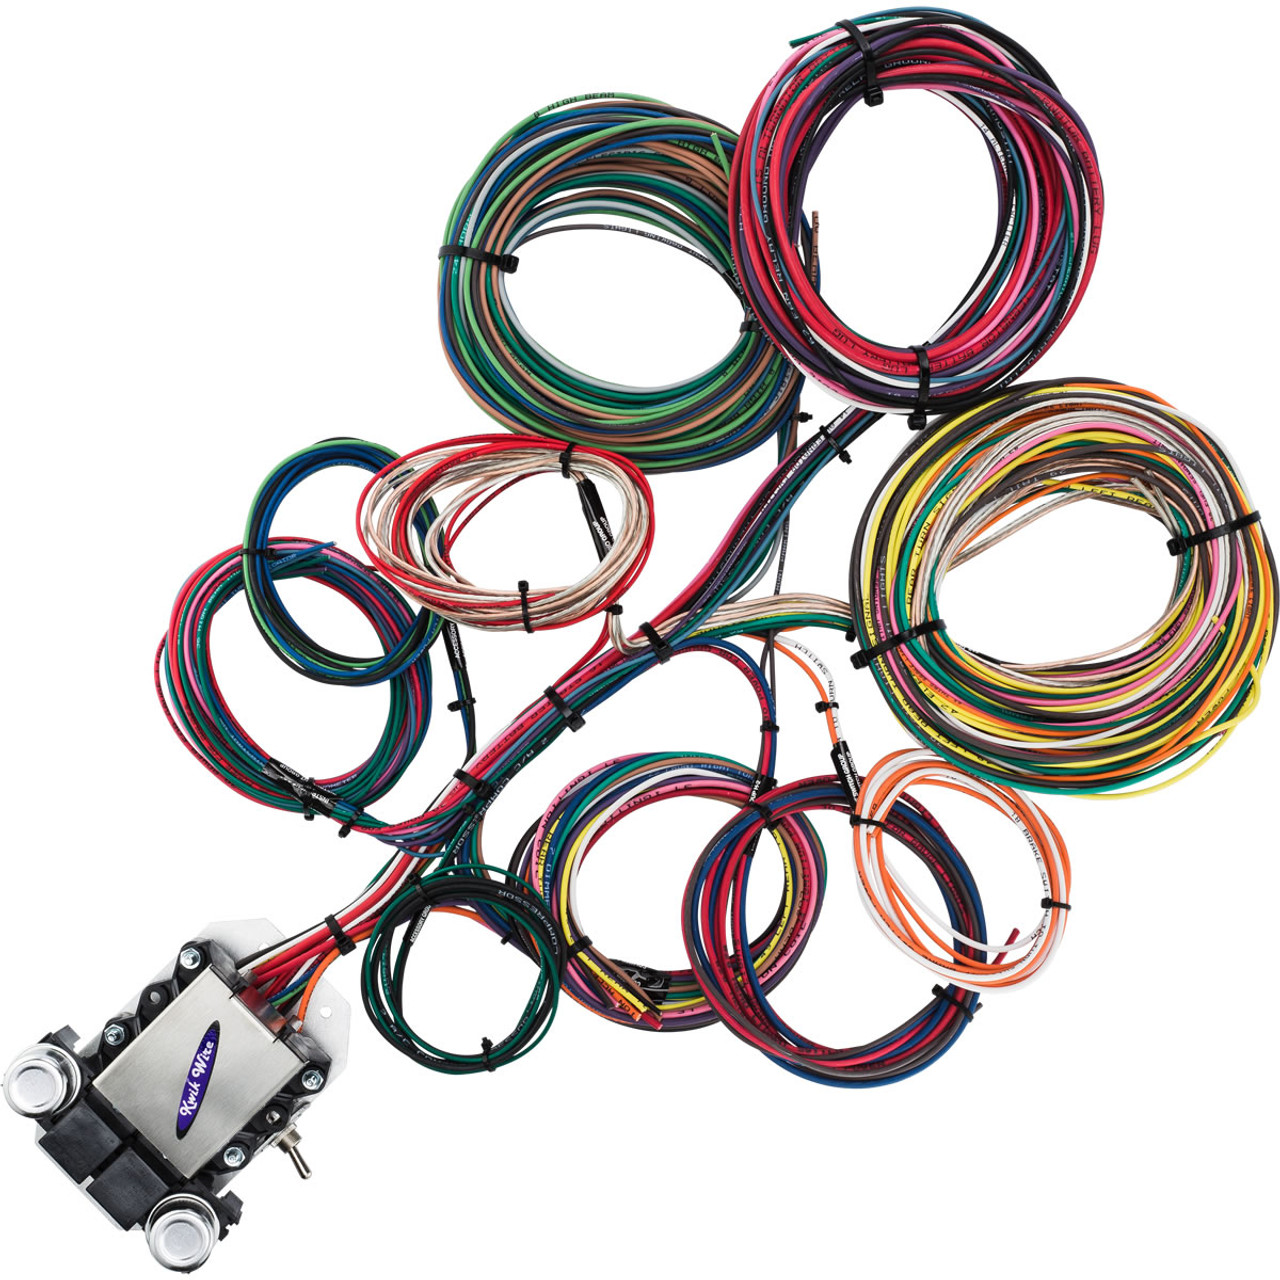 14 circuit ford wire harness kwikwire com electrify your ride Ford Trailer Wiring Harness Diagram